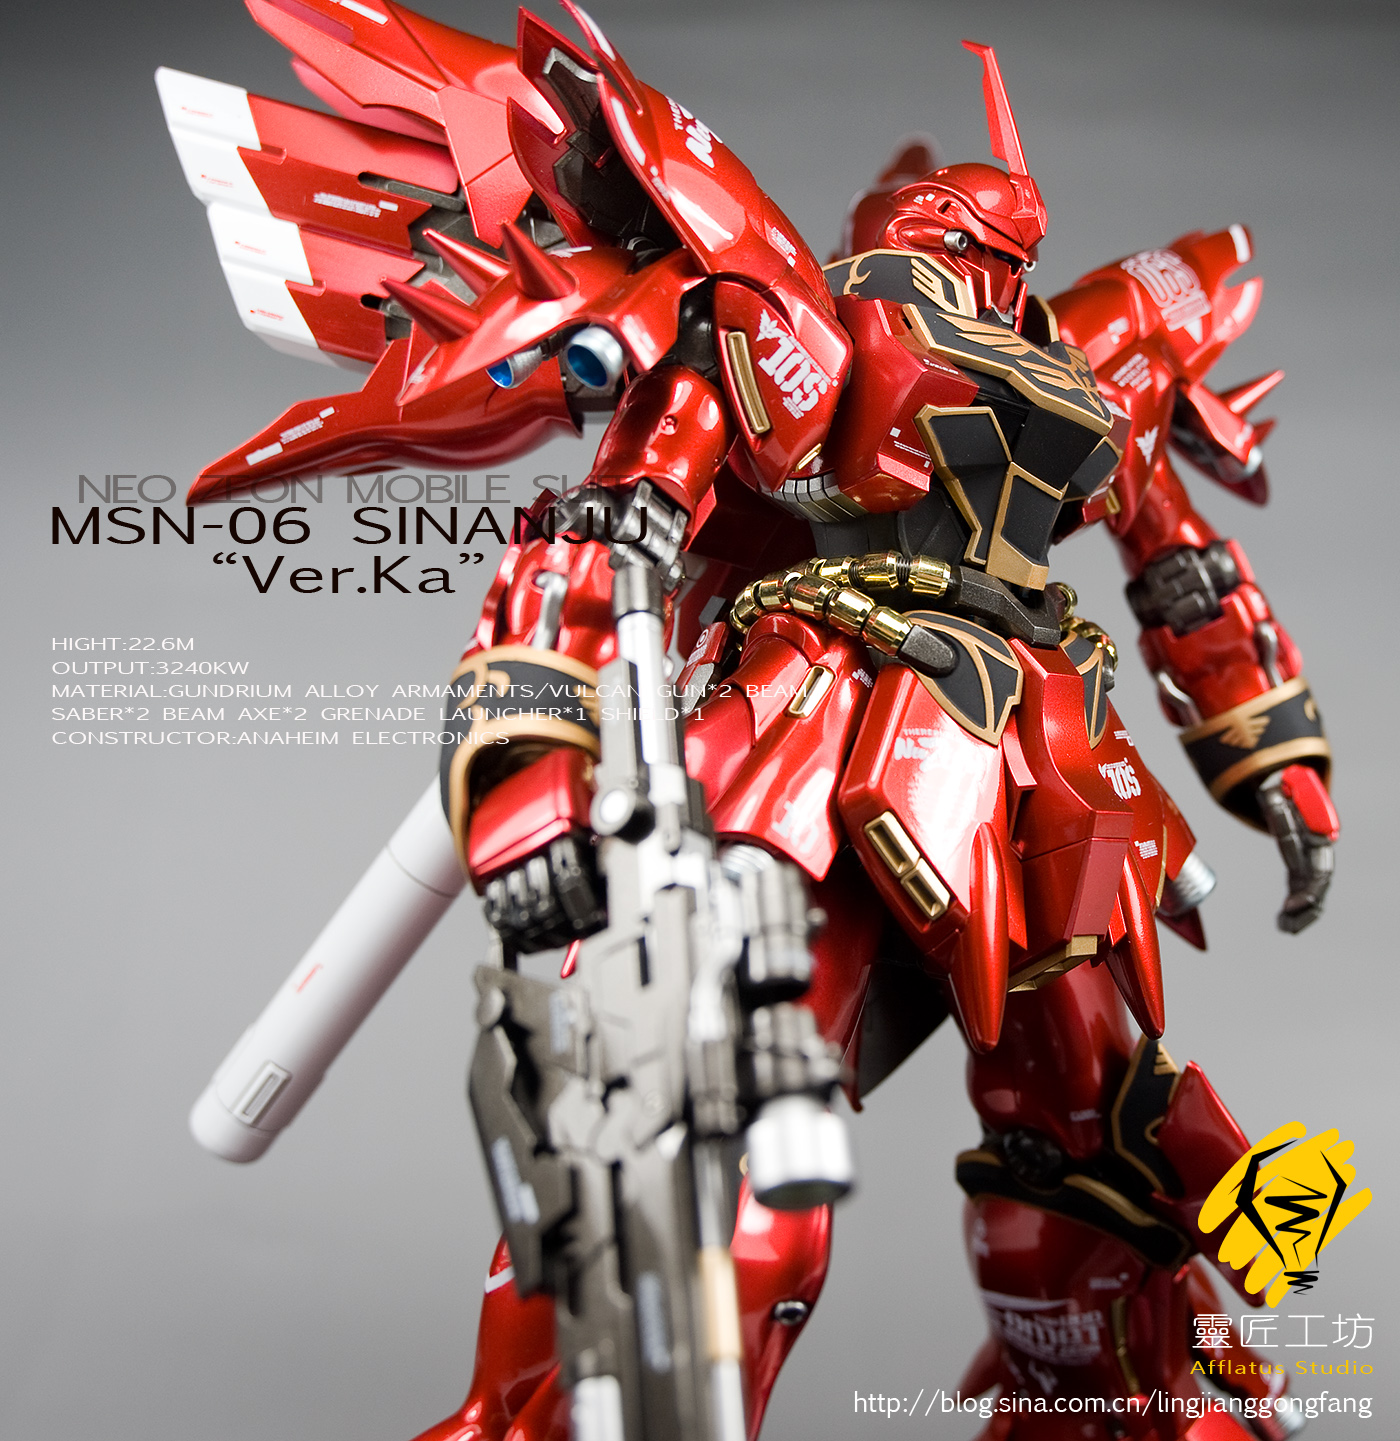 MG 1/100 MSN-06 Sinanju Ver. Ka | patrickgrade